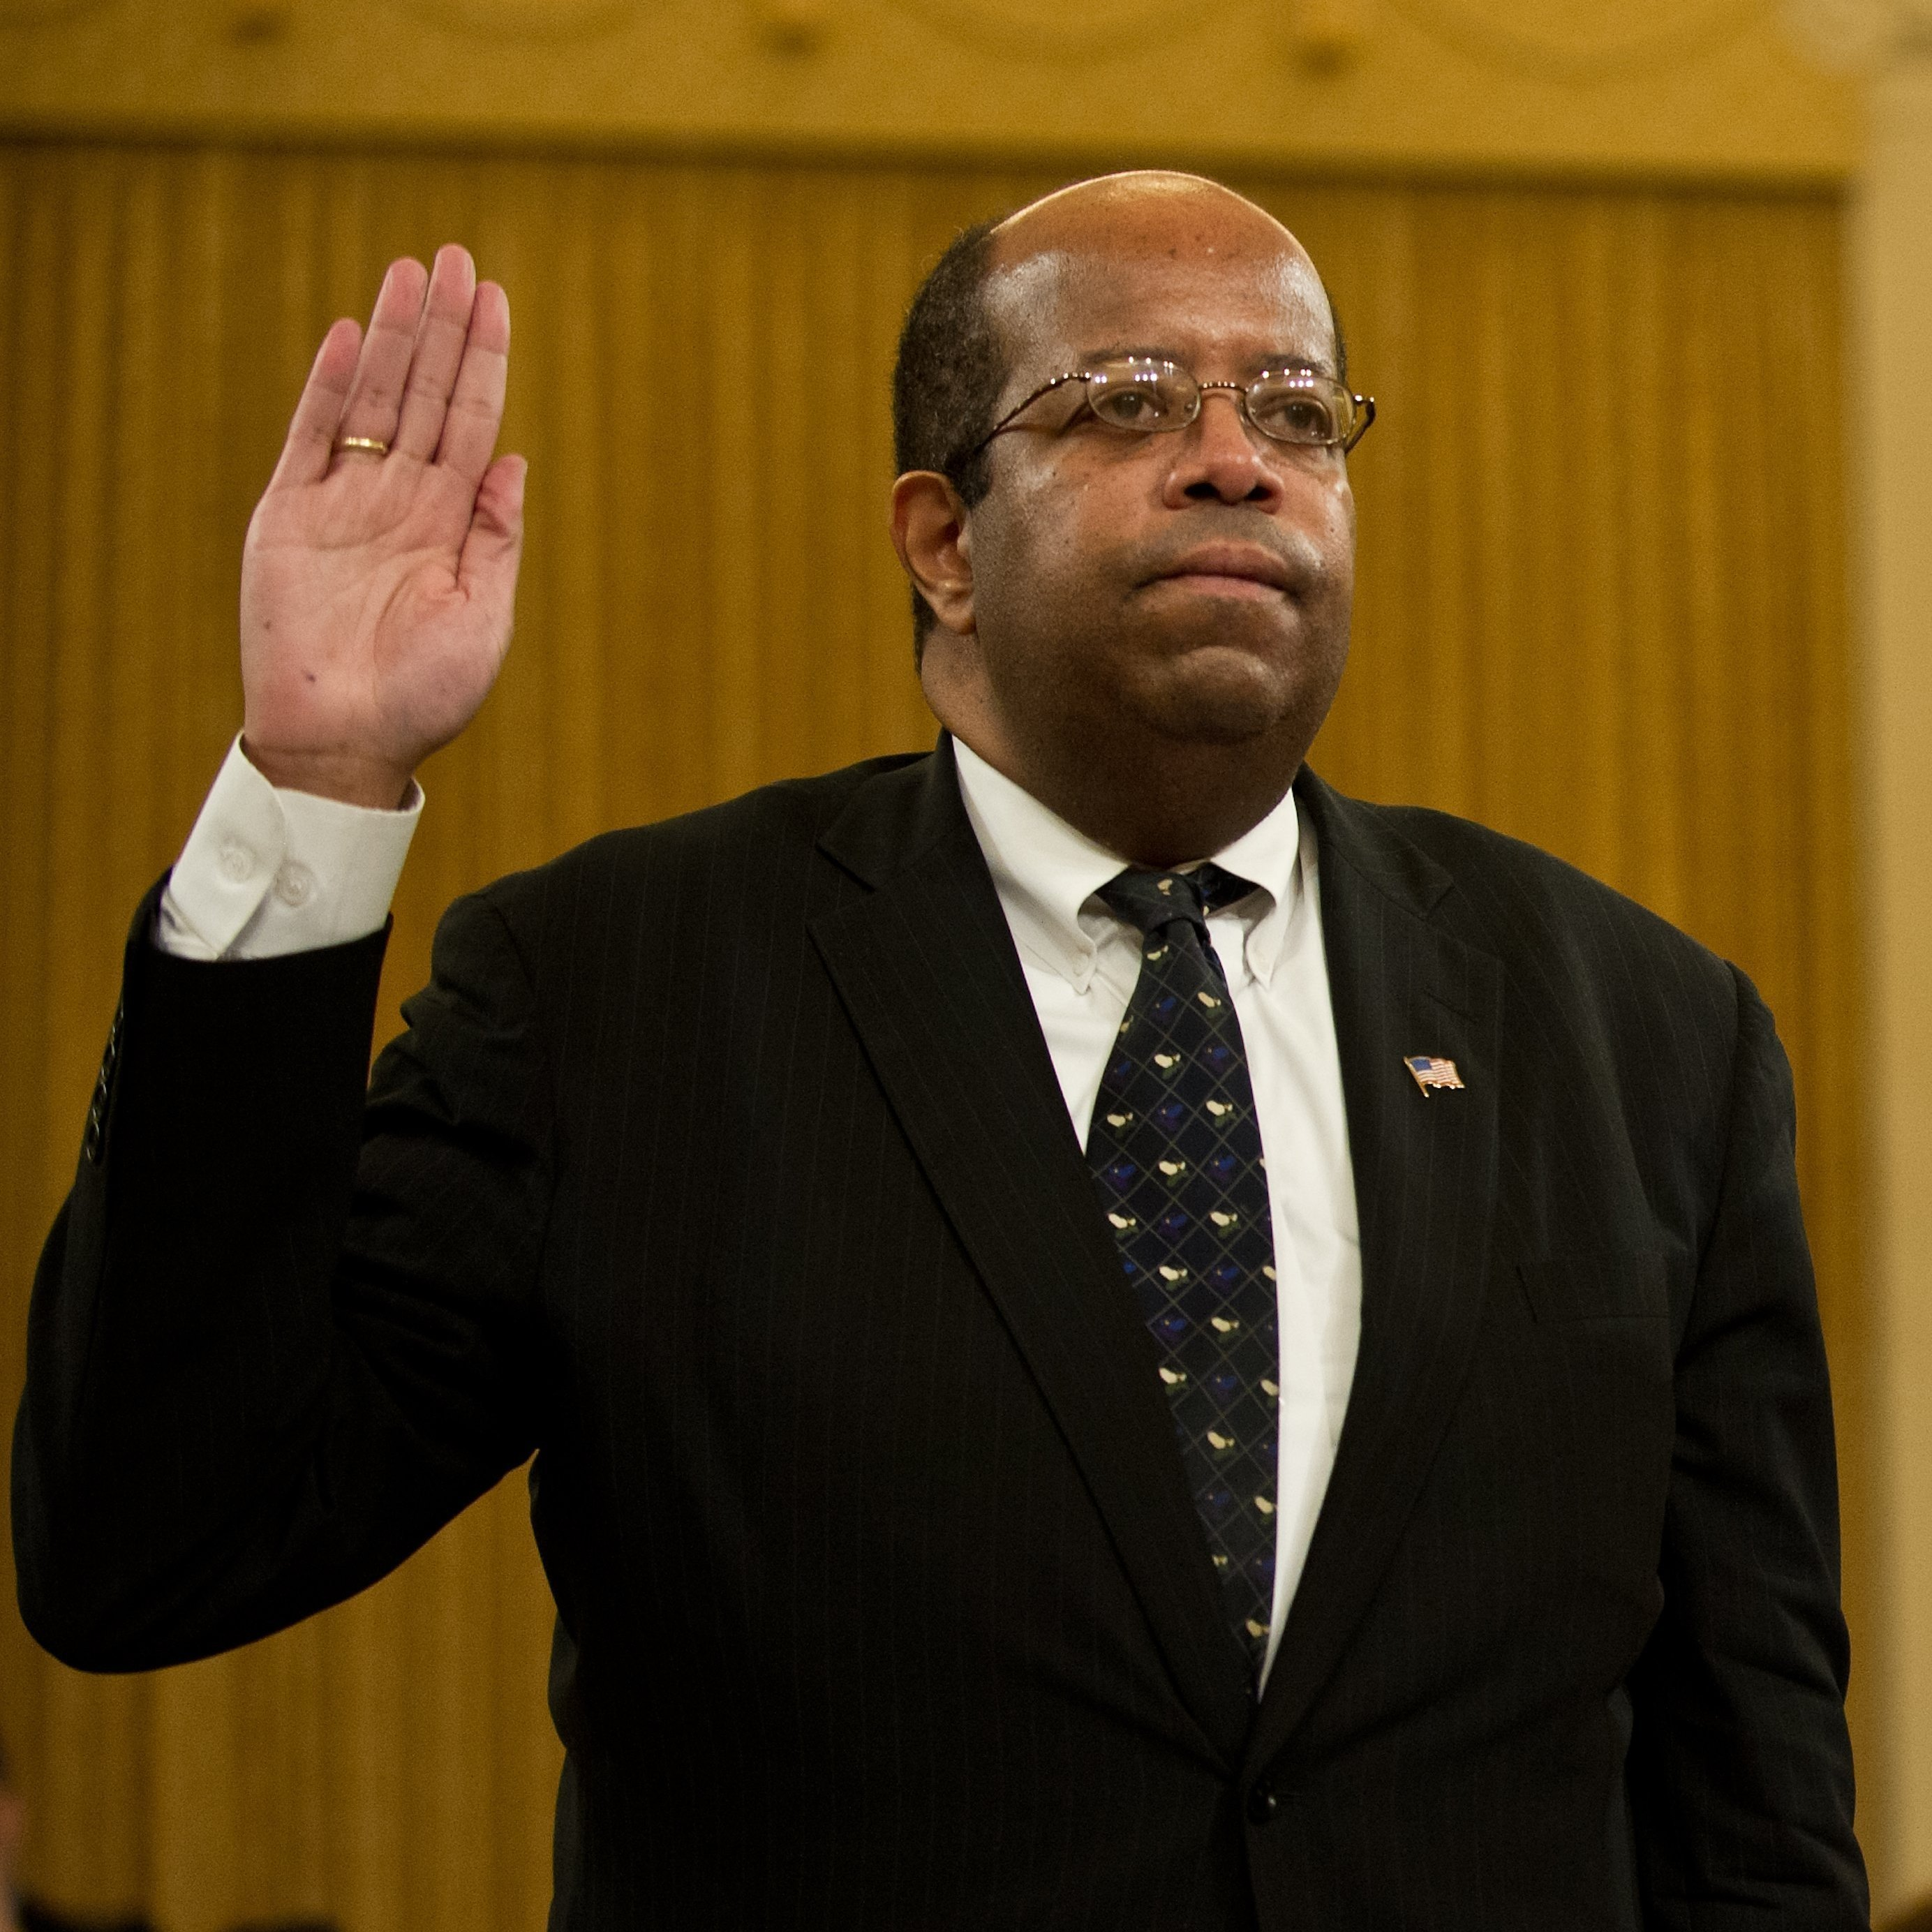 Treasury Inspector General for Tax Administration J. Russell George is sworn in before a full House Ways and Means Committee hearing in May.